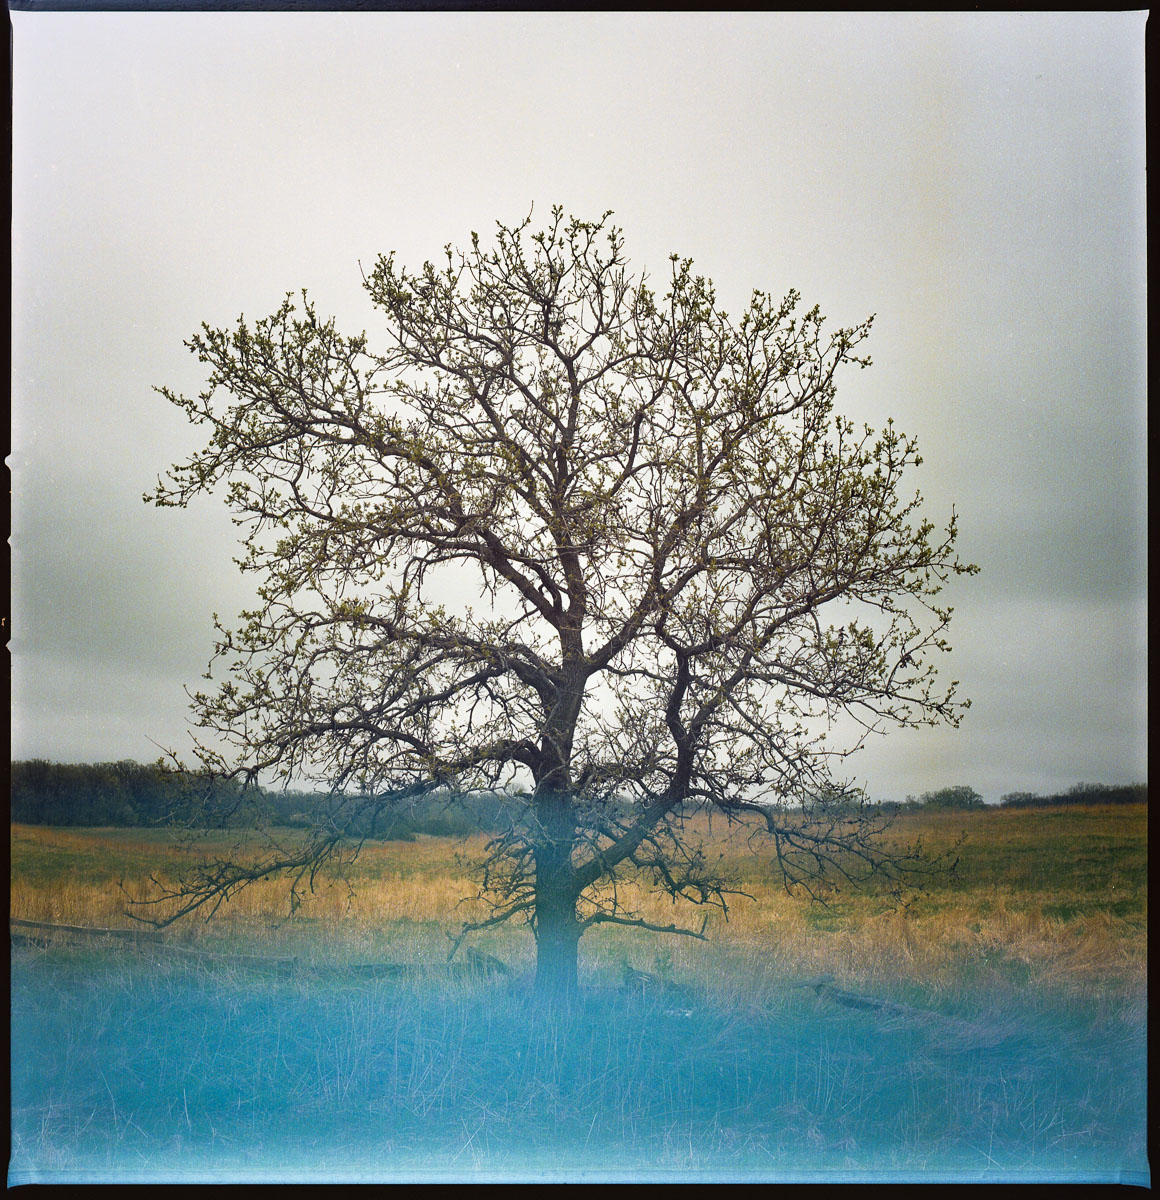 fineart-tree-film-color-1.jpg